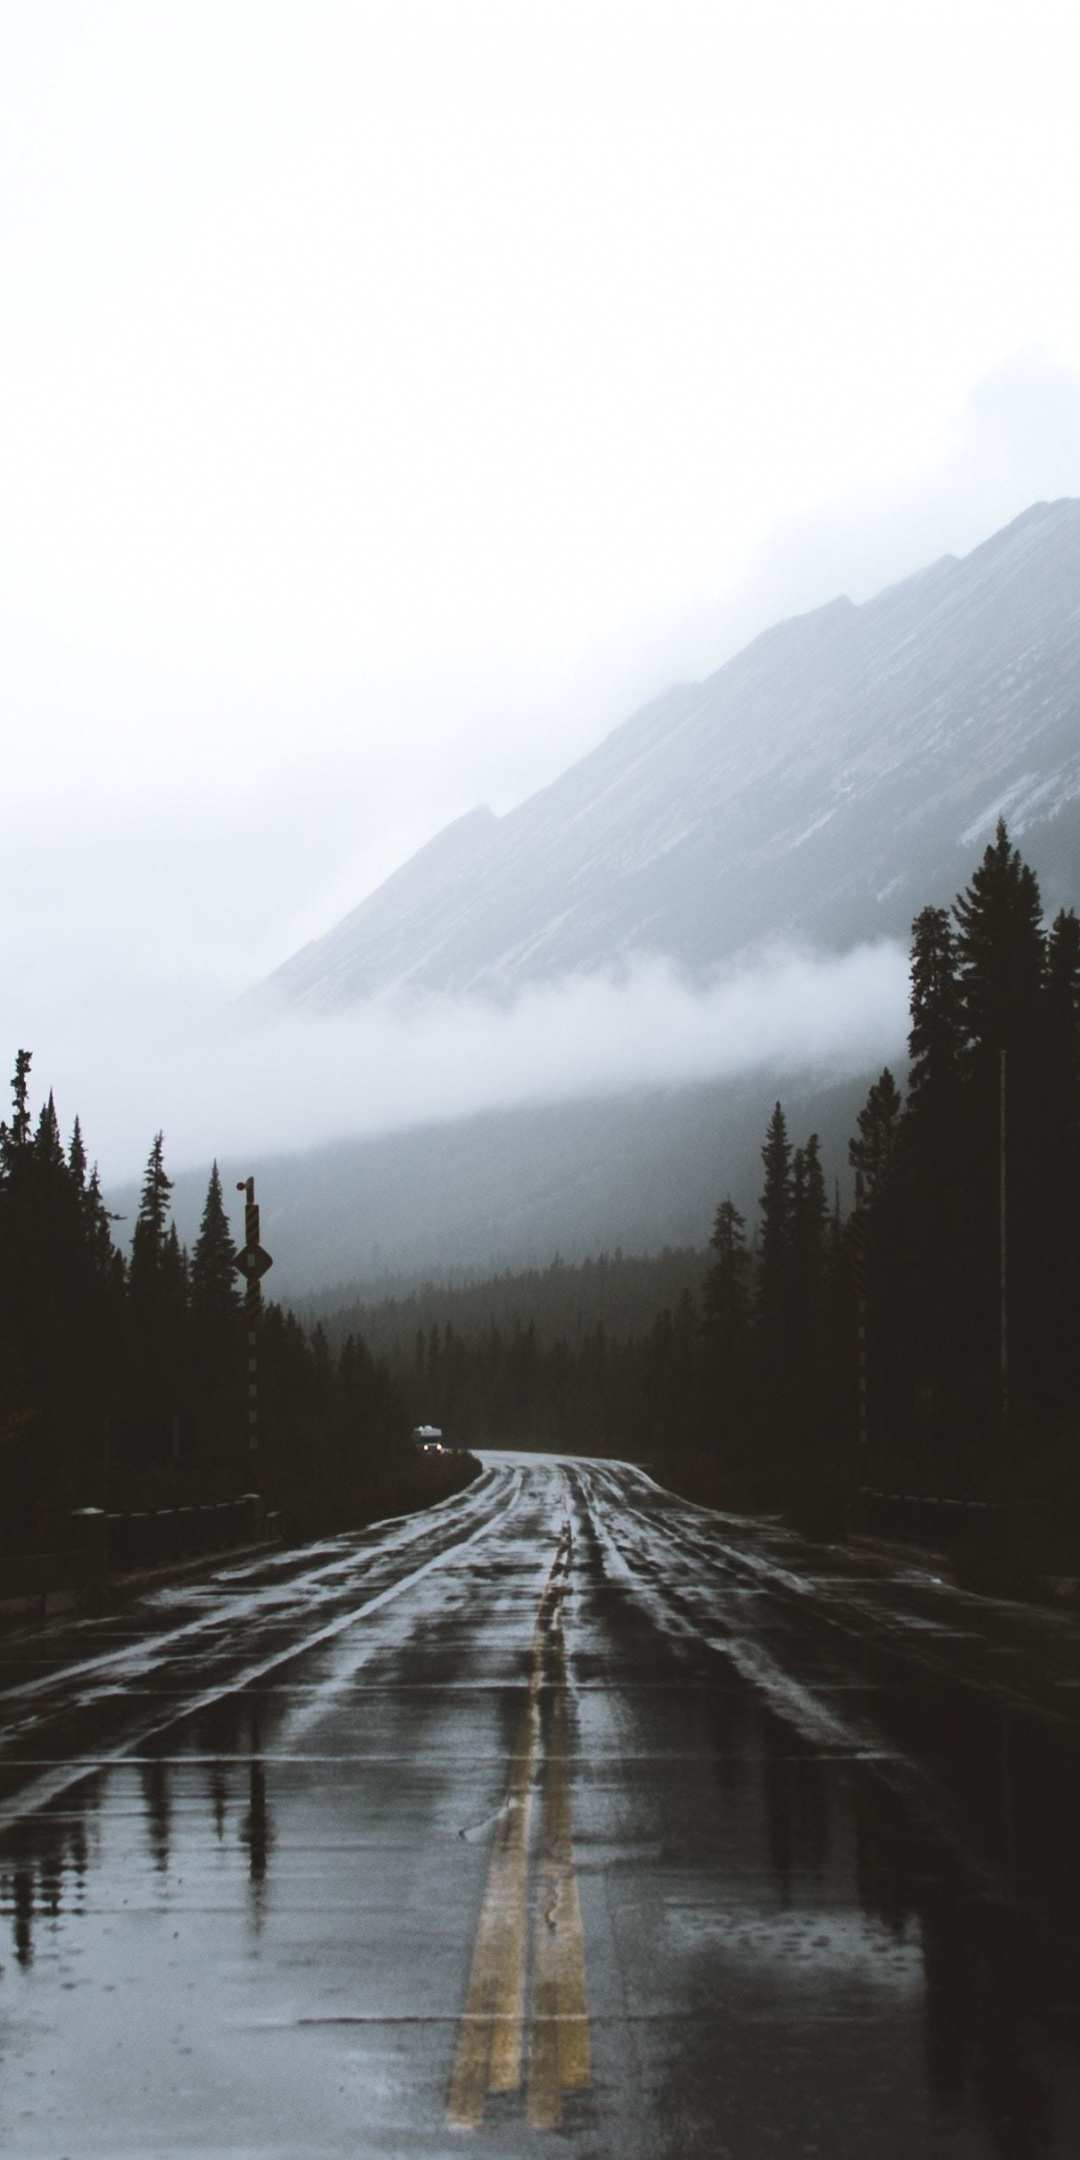 Cute Background Wallpaper Download Alberta Canada Road Rainy Day Iphone Wallpaper Iphone